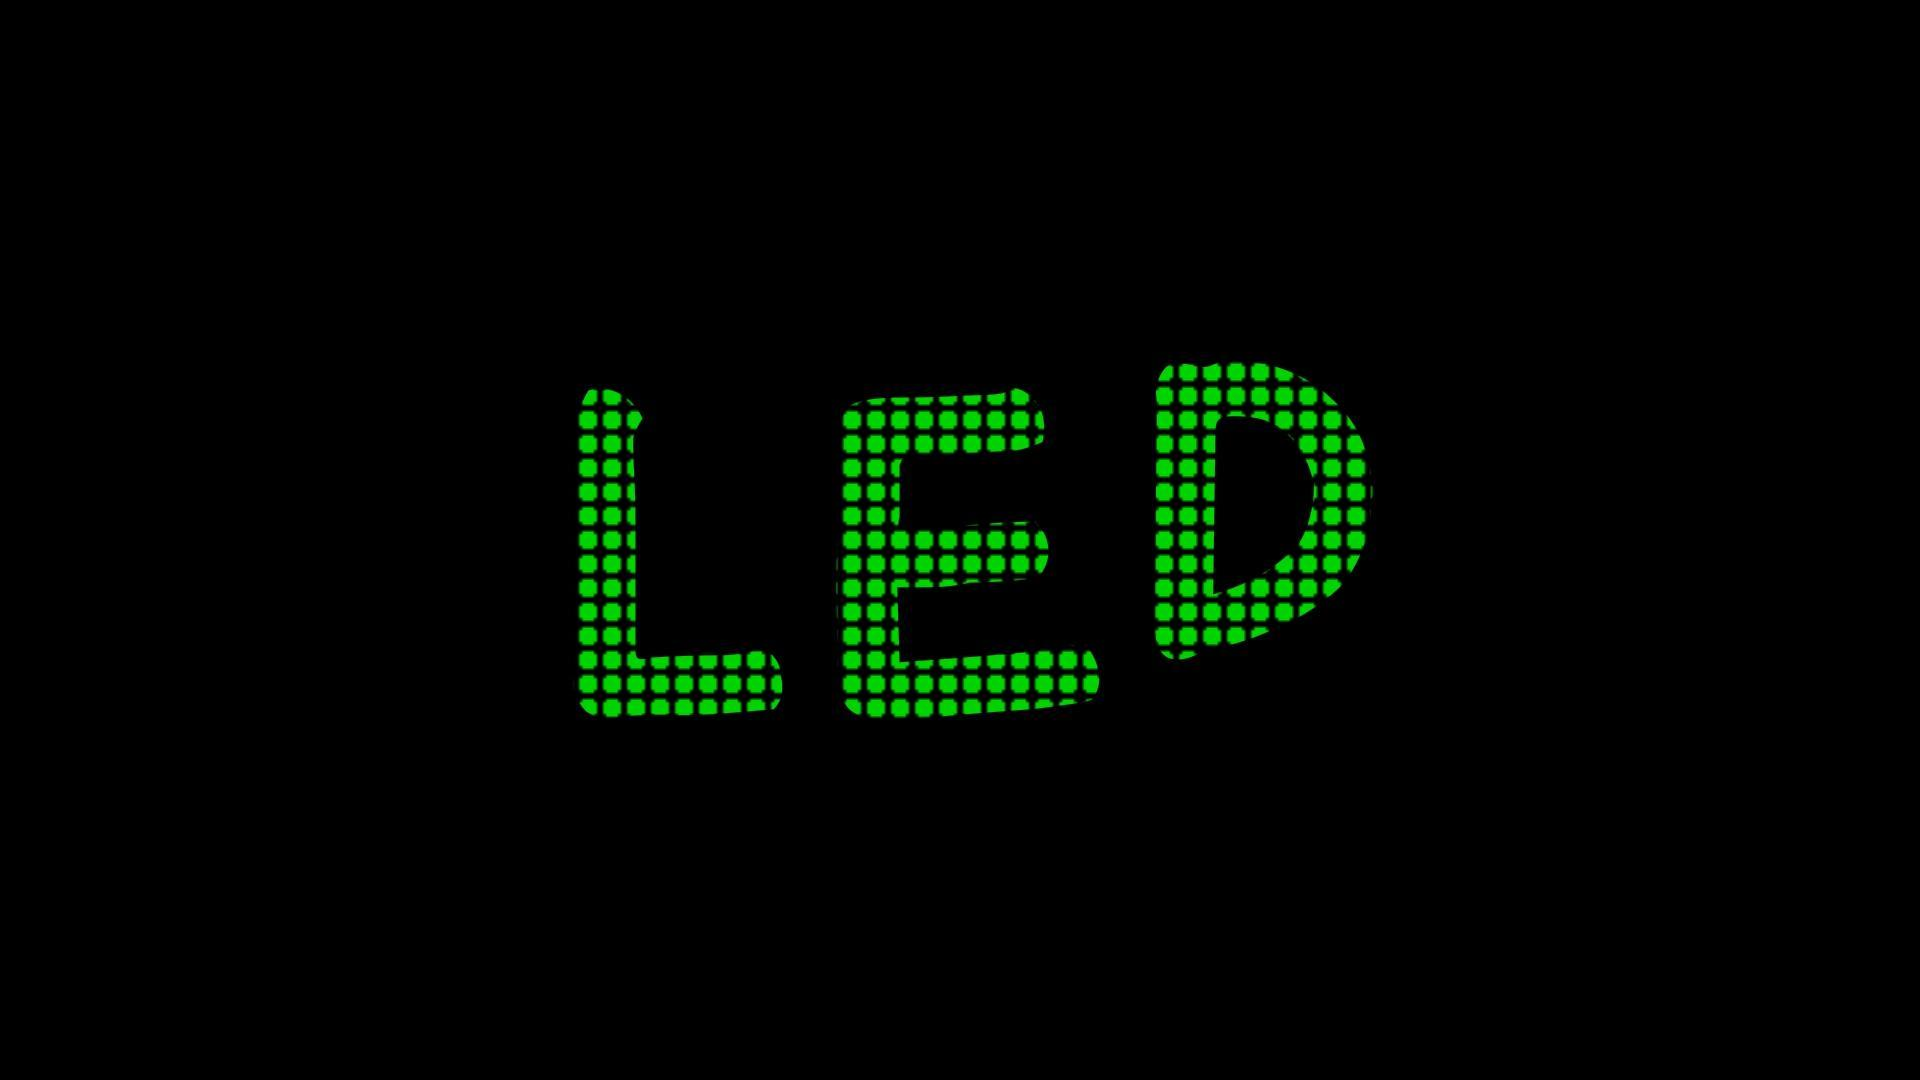 fdeed8b954a LED전광판-(Electronic Display) for Android - APK Download